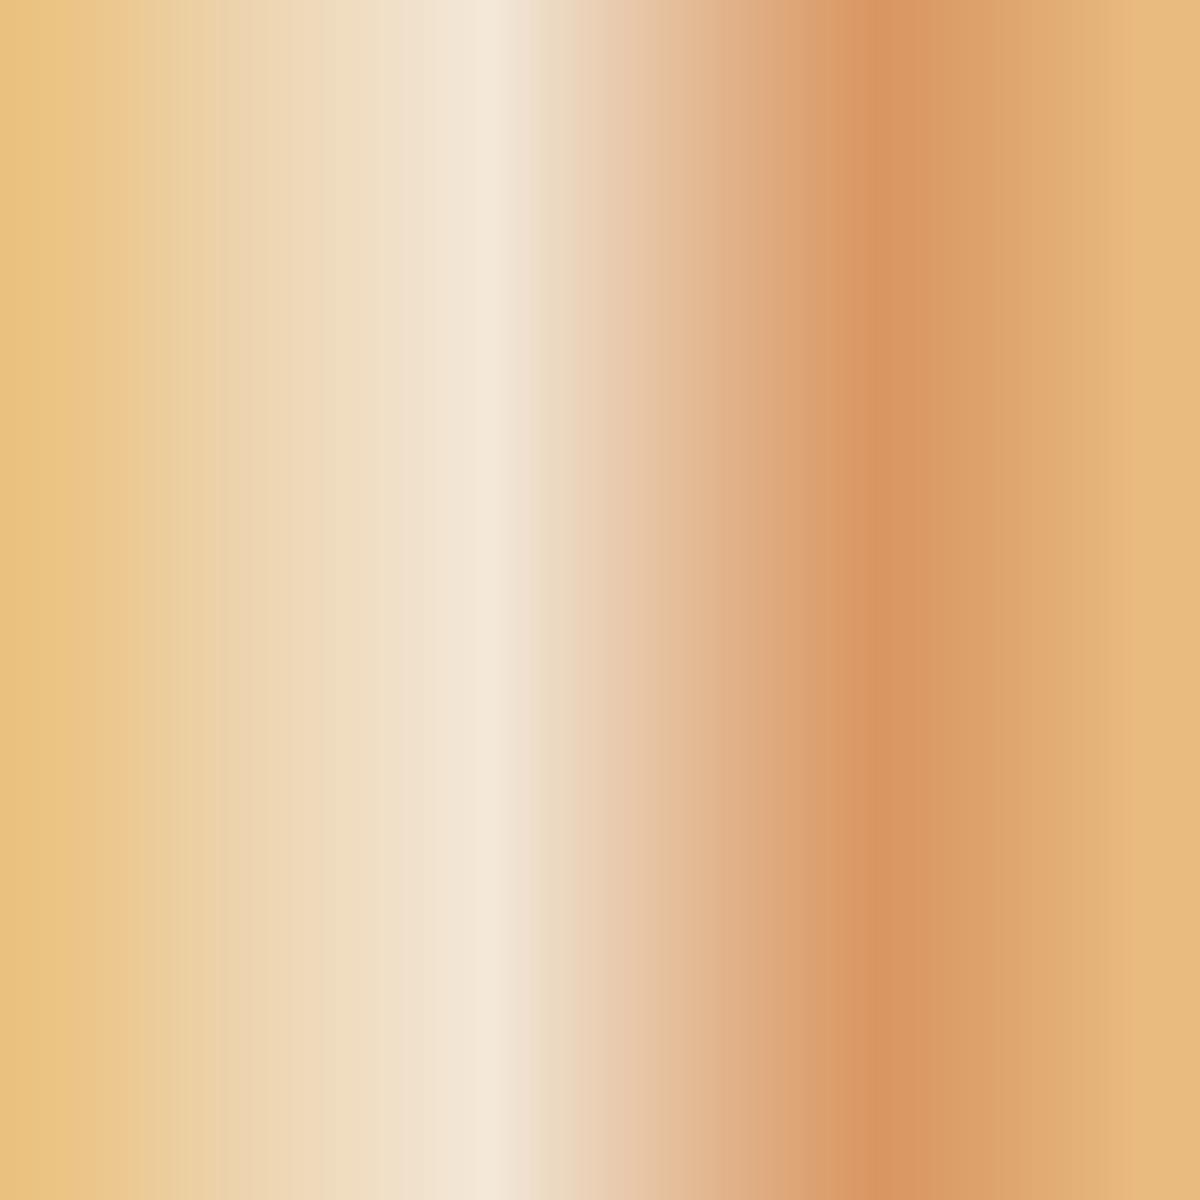 FolkArt ® Brushed Metal™ Acrylic Paint - Pearl Gold, 2 oz.